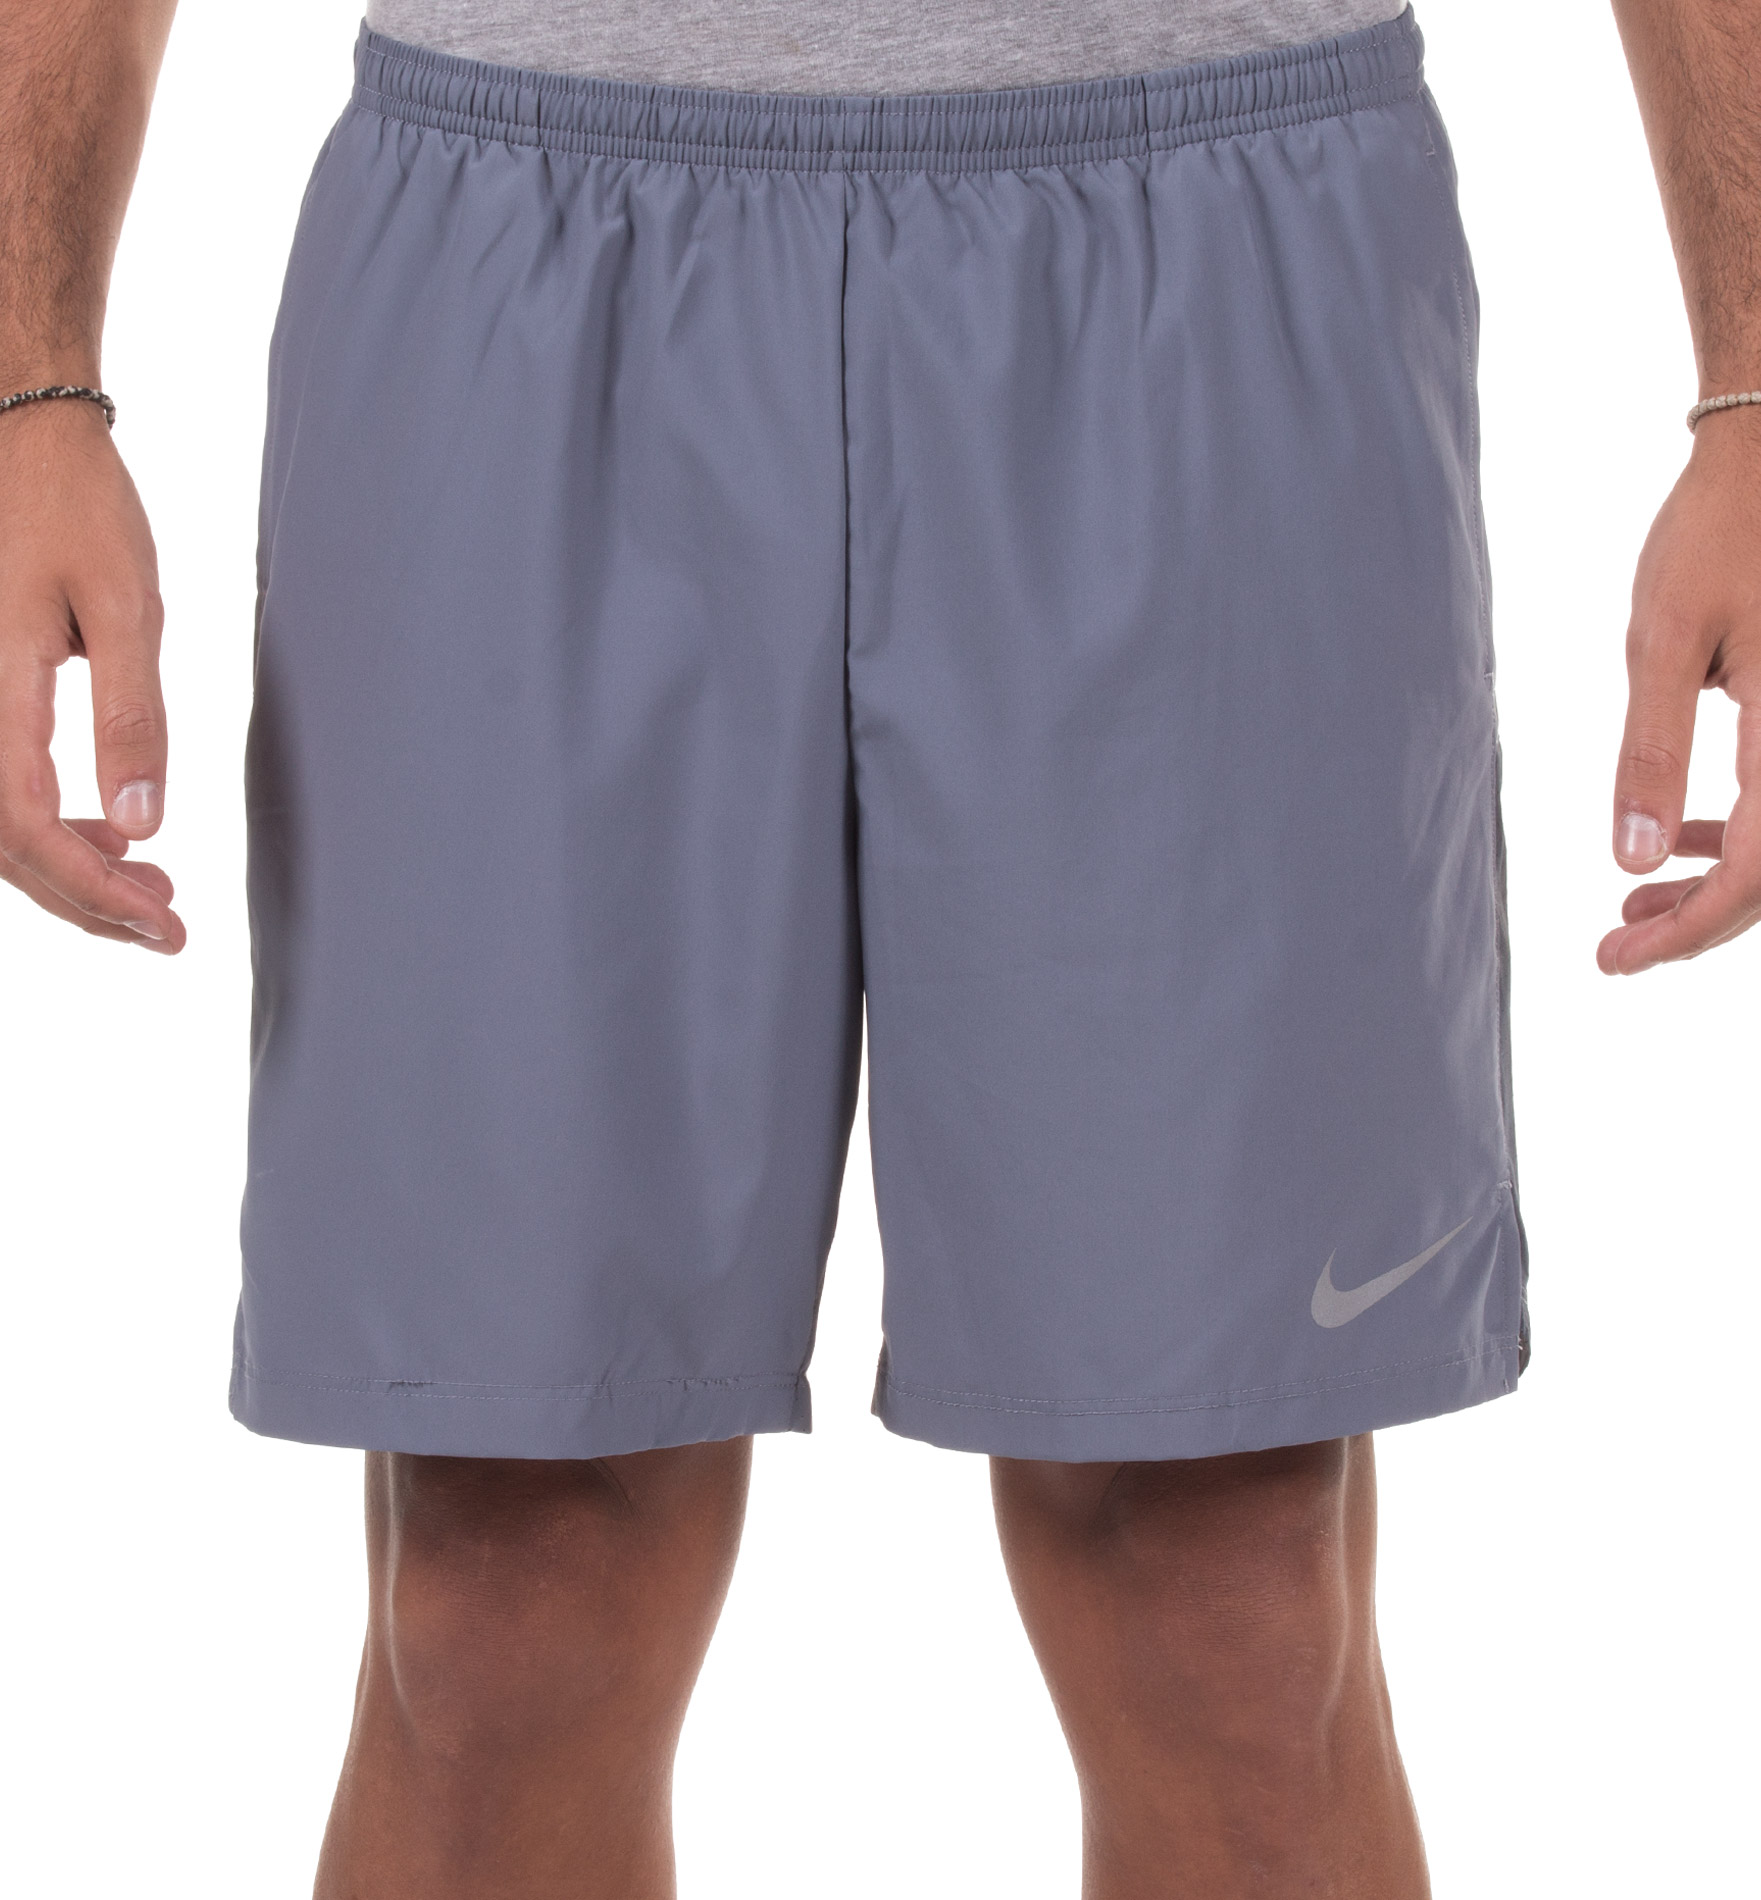 NIKE M NK FLX CHLLGR SHORT 5IN 856836-497 Μπλε